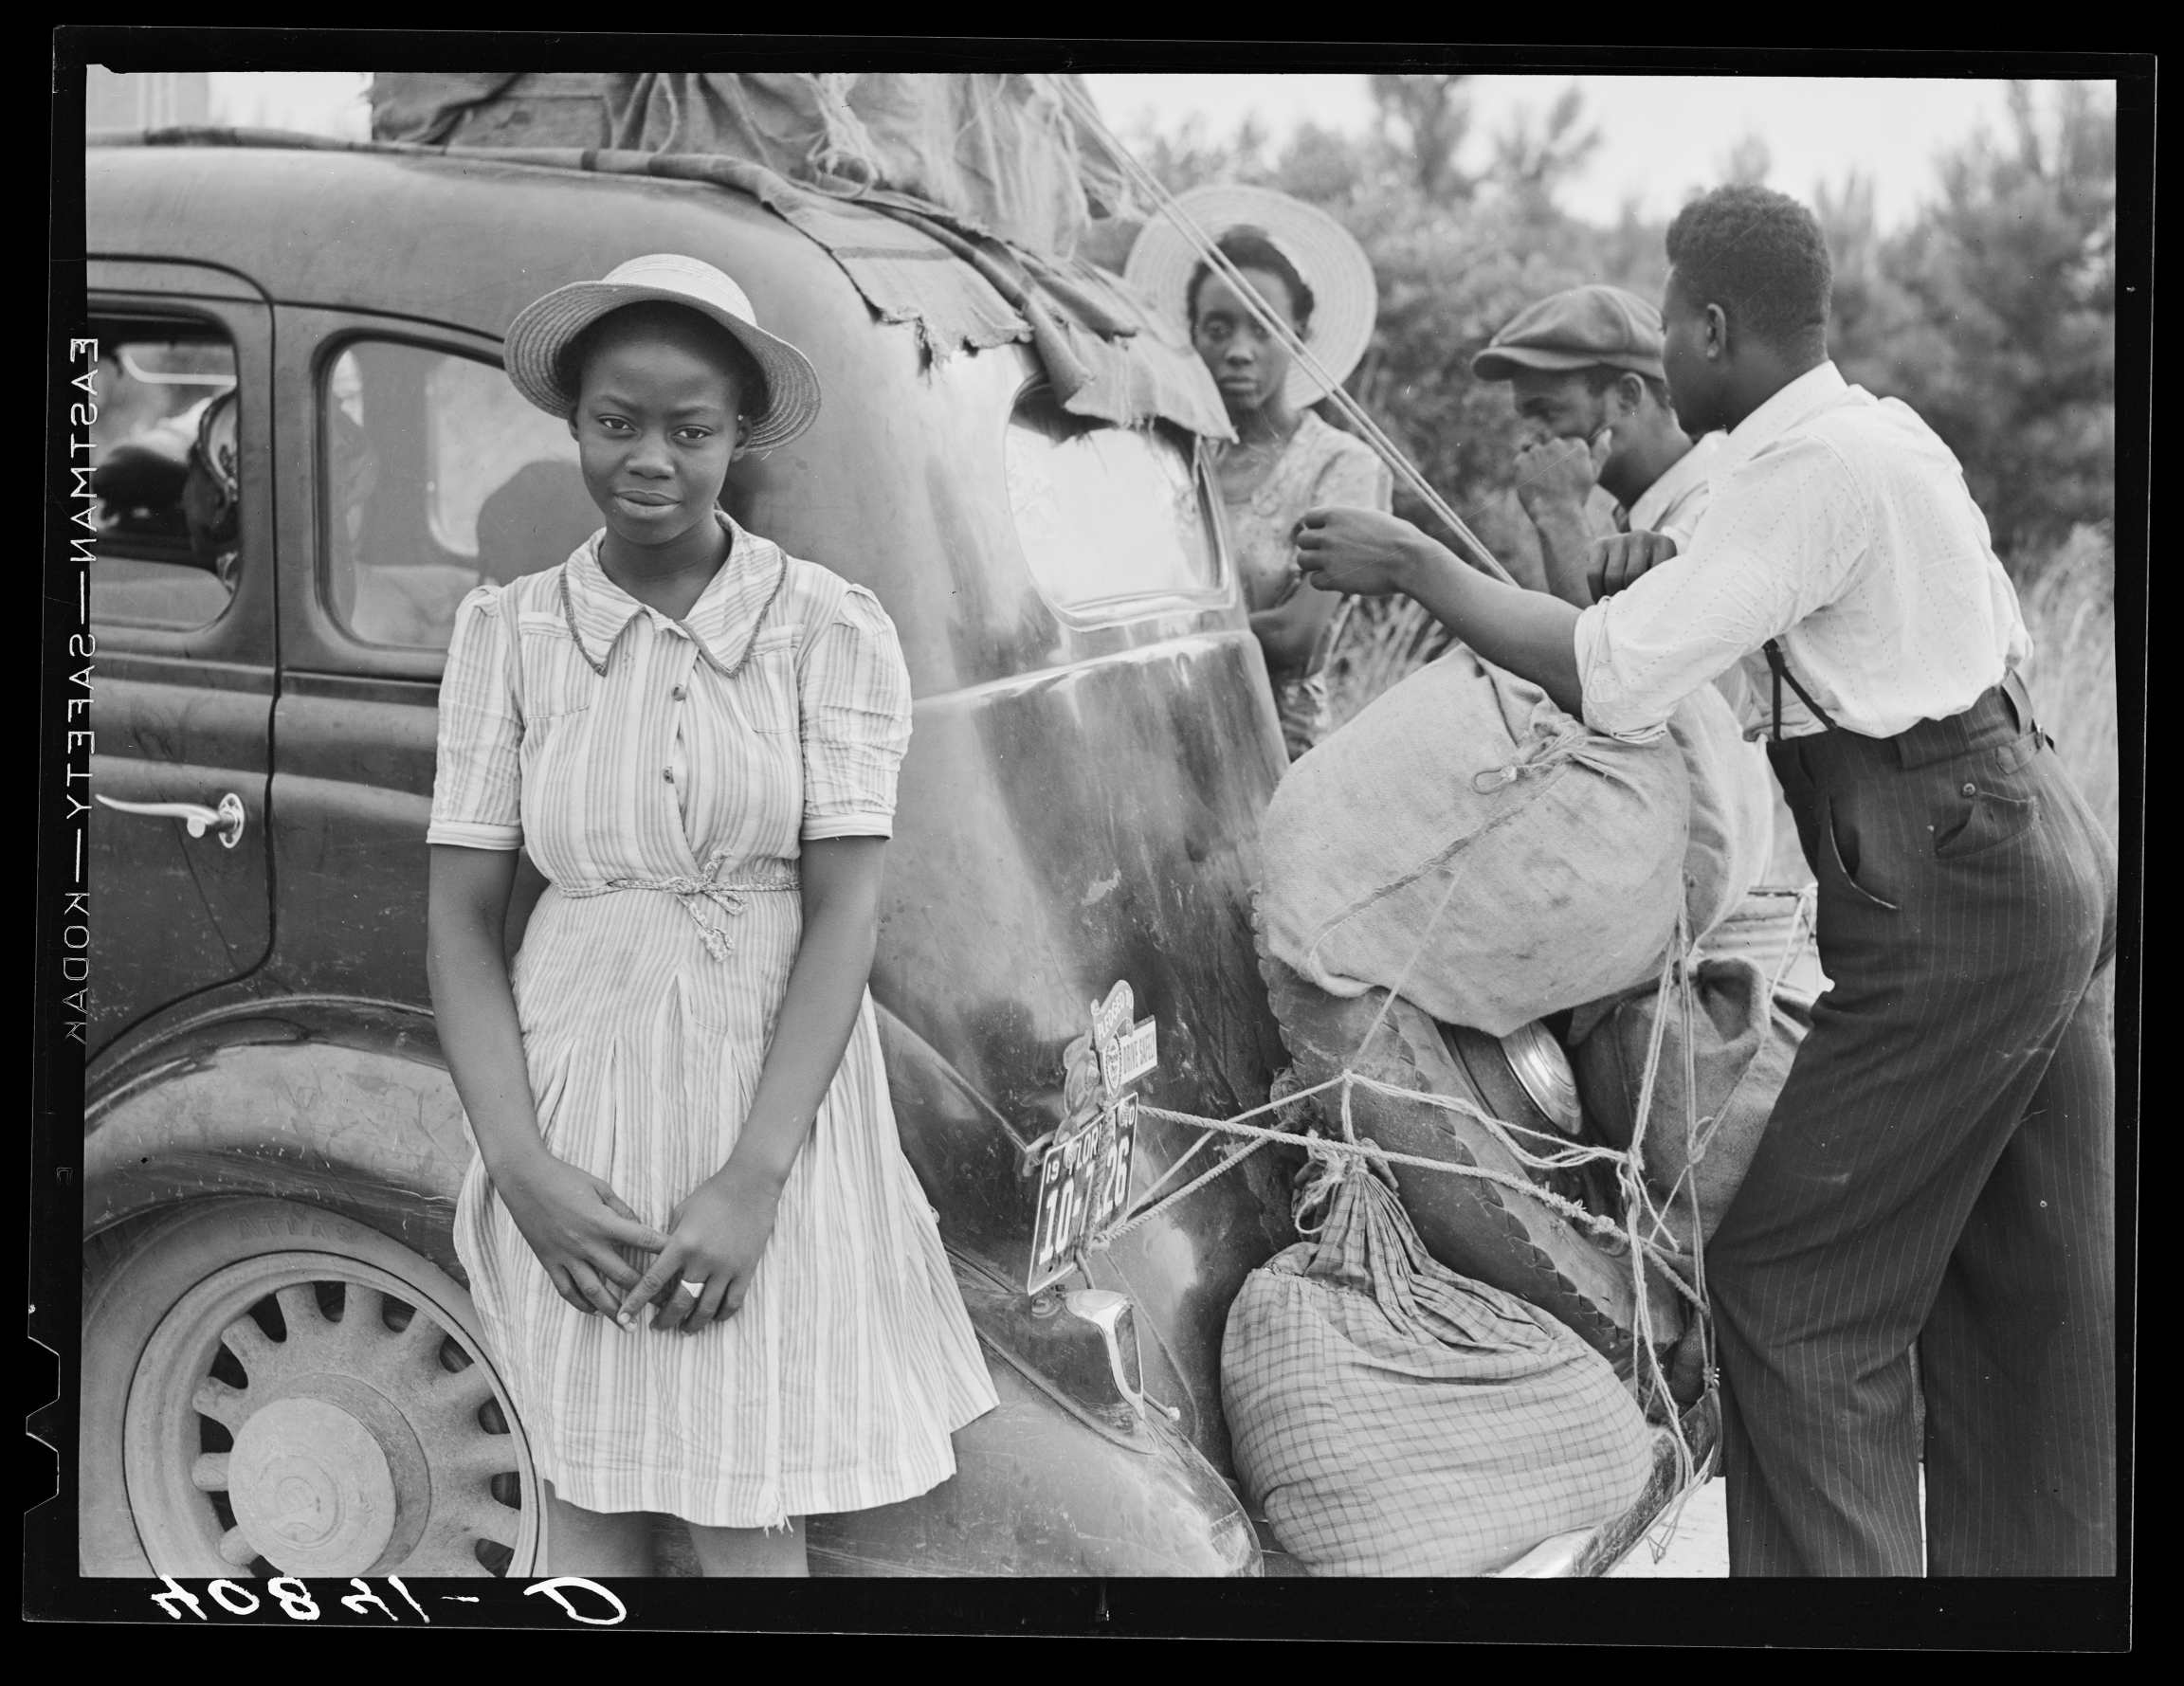 A family is seen tying sacks of potatoes to a car.